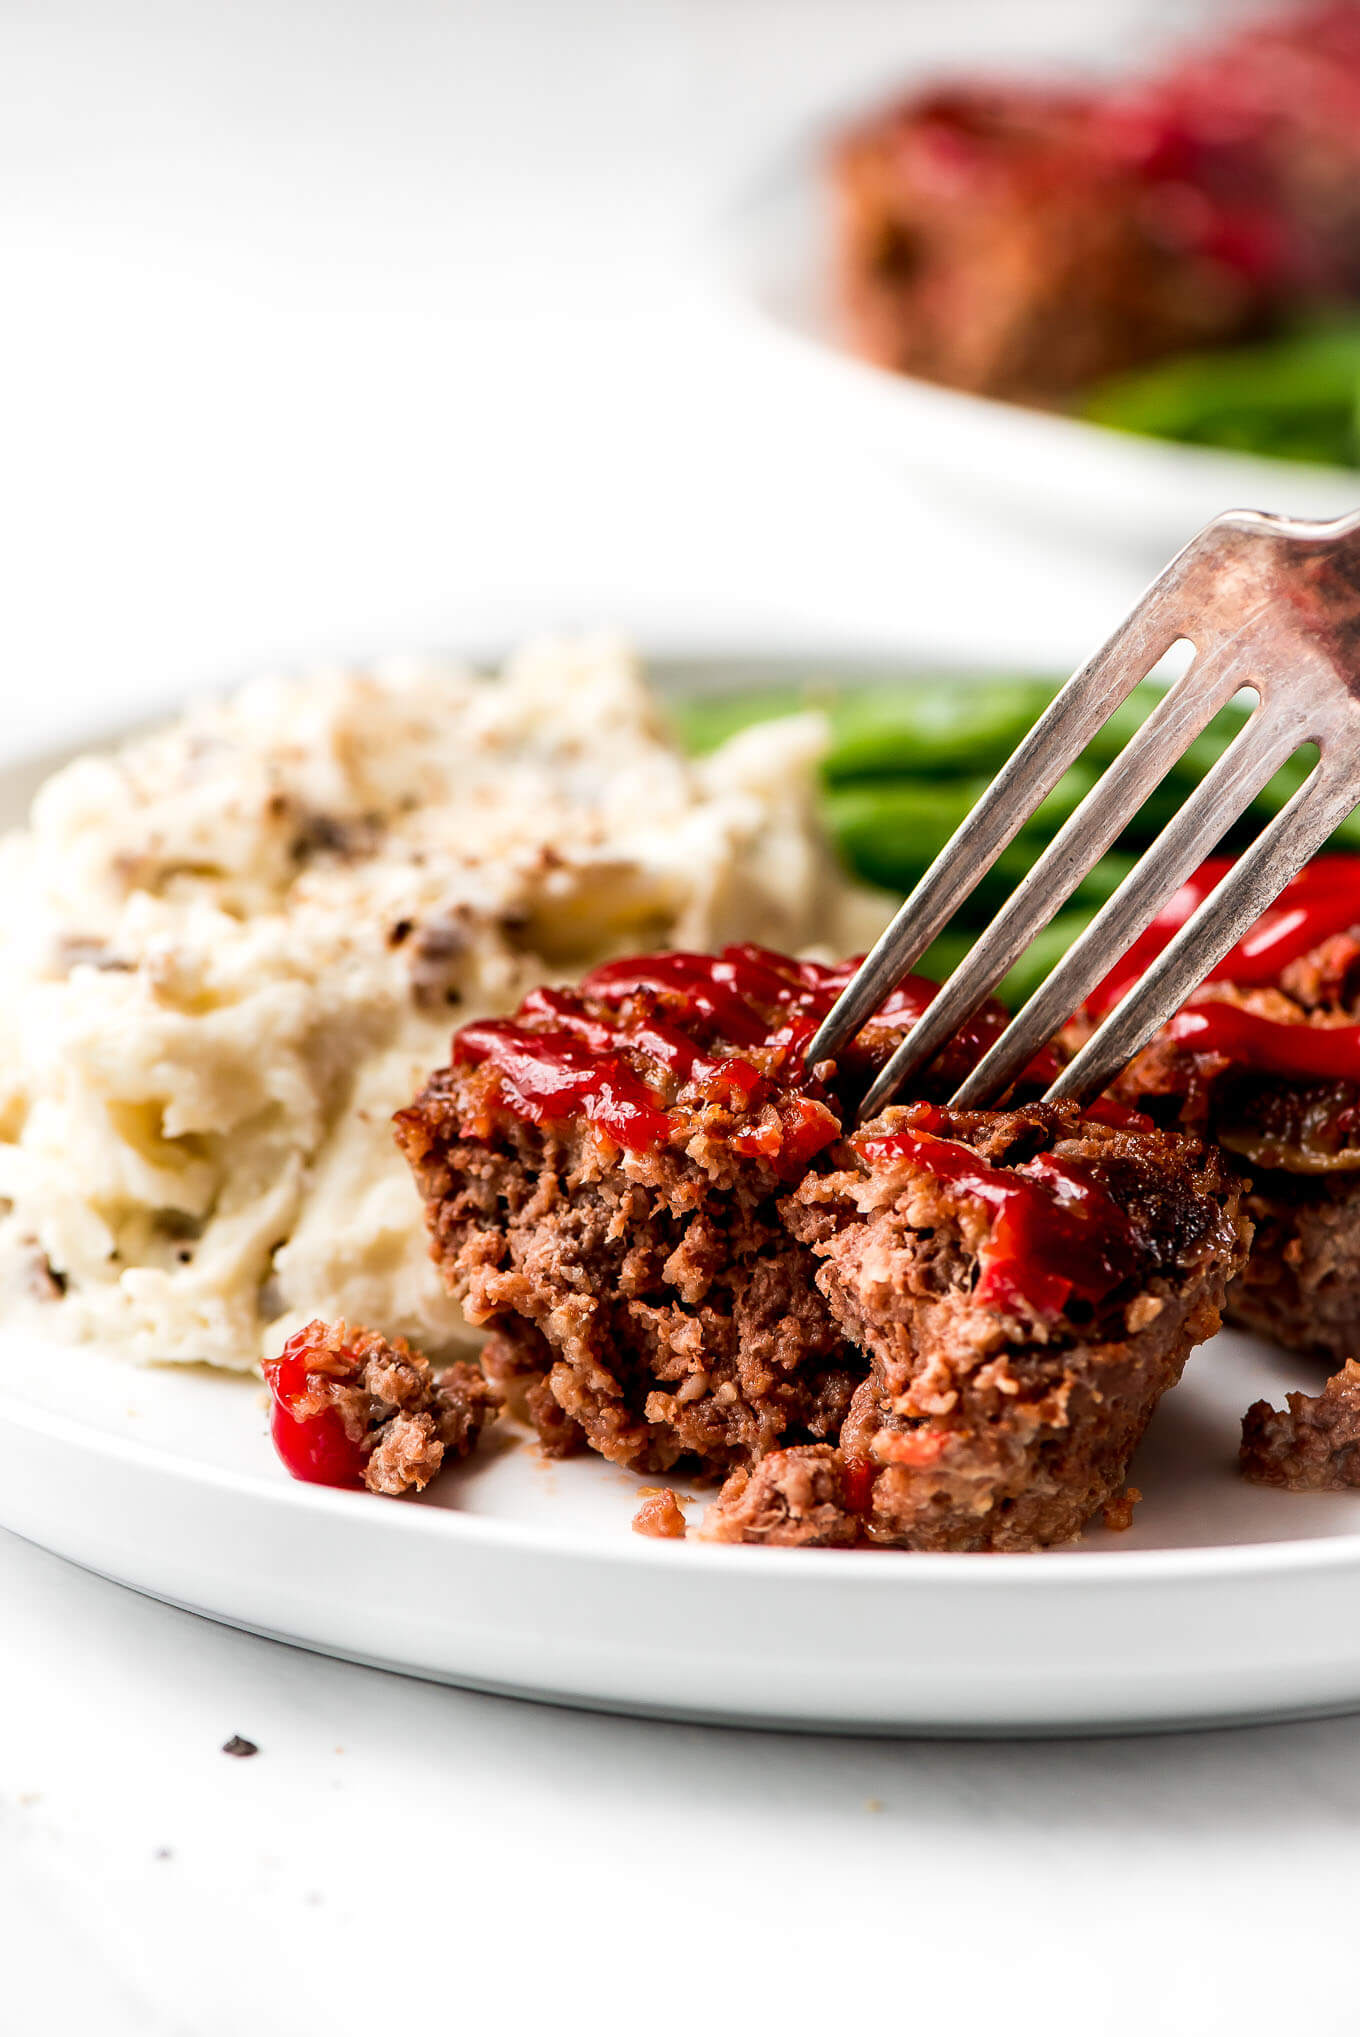 Half of a Mini Meatloaf showing the inside and a fork cutting into it.